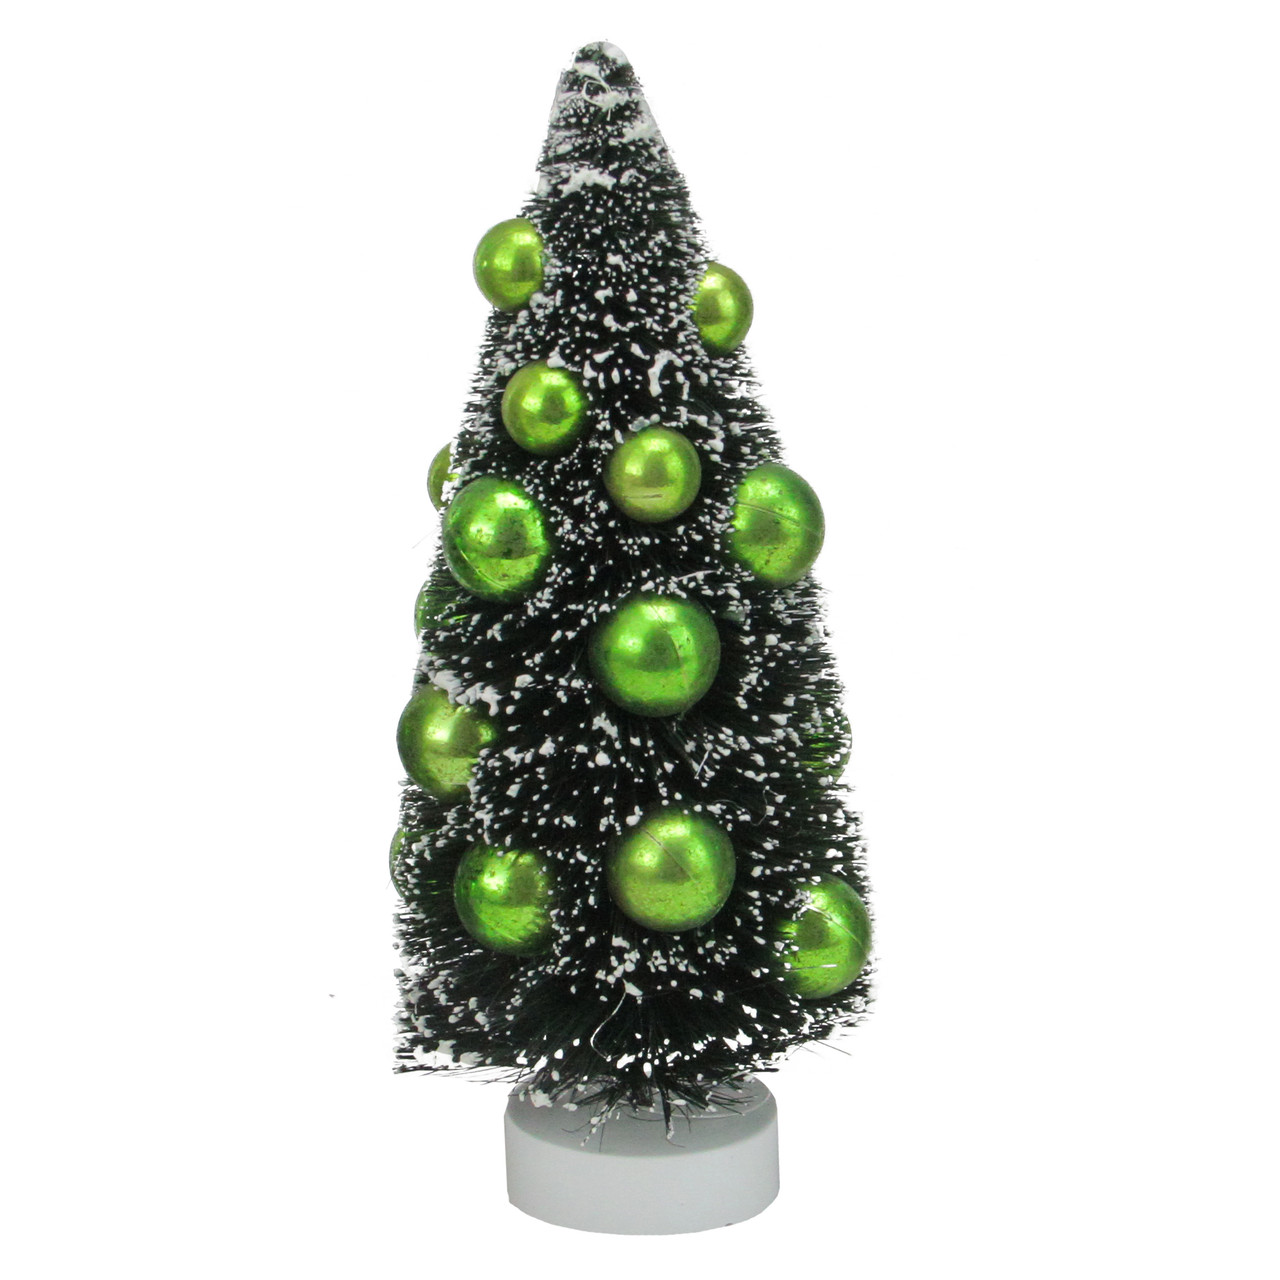 8 Green Contemporary Christmas Tree With Ball Ornaments Tabletop Decor Christmas Central